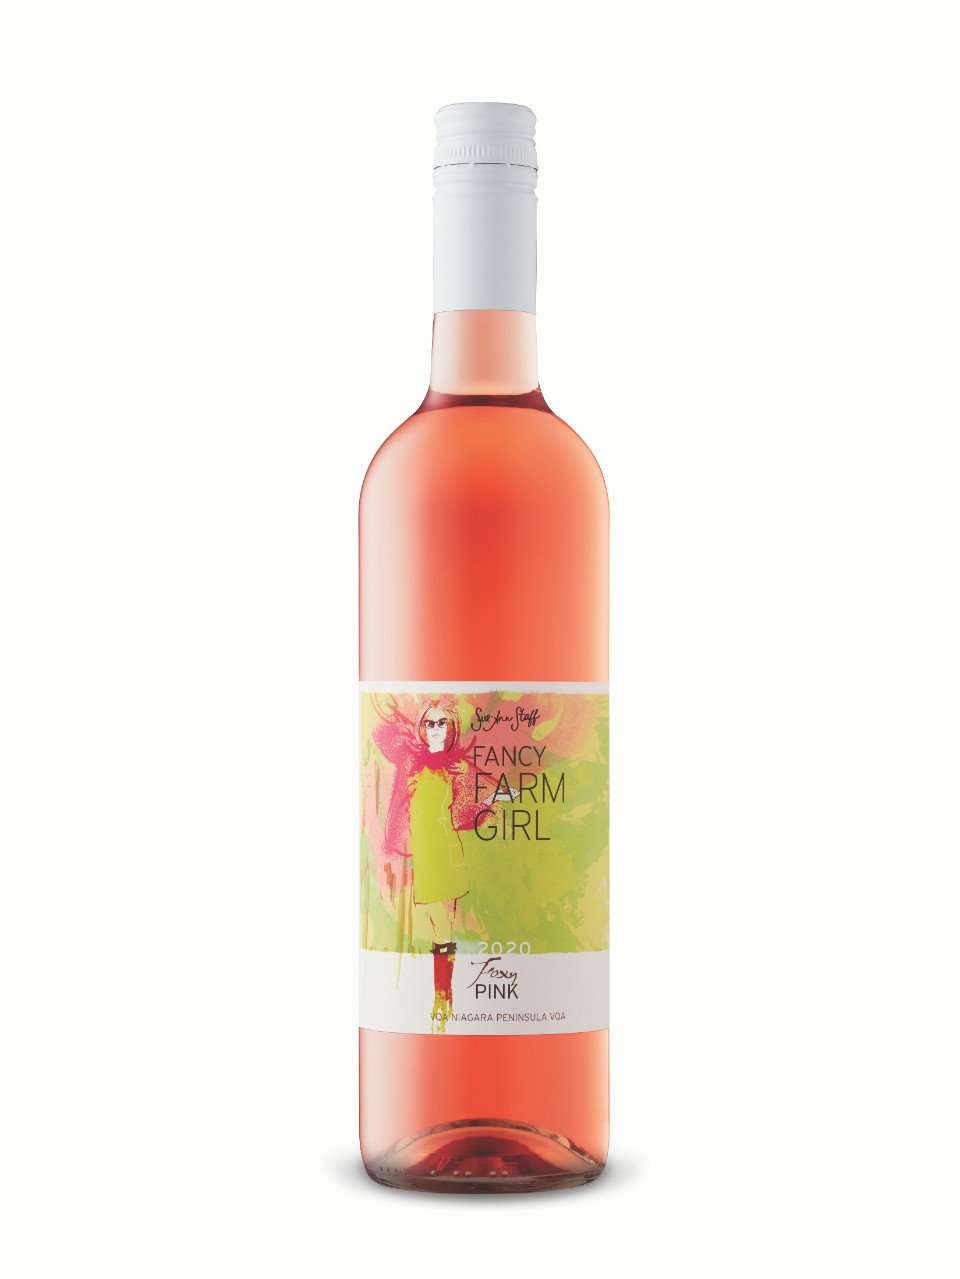 Sue-Ann Staff Fancy Farm Girl Foxy Pink Rosé 2019 from LCBO